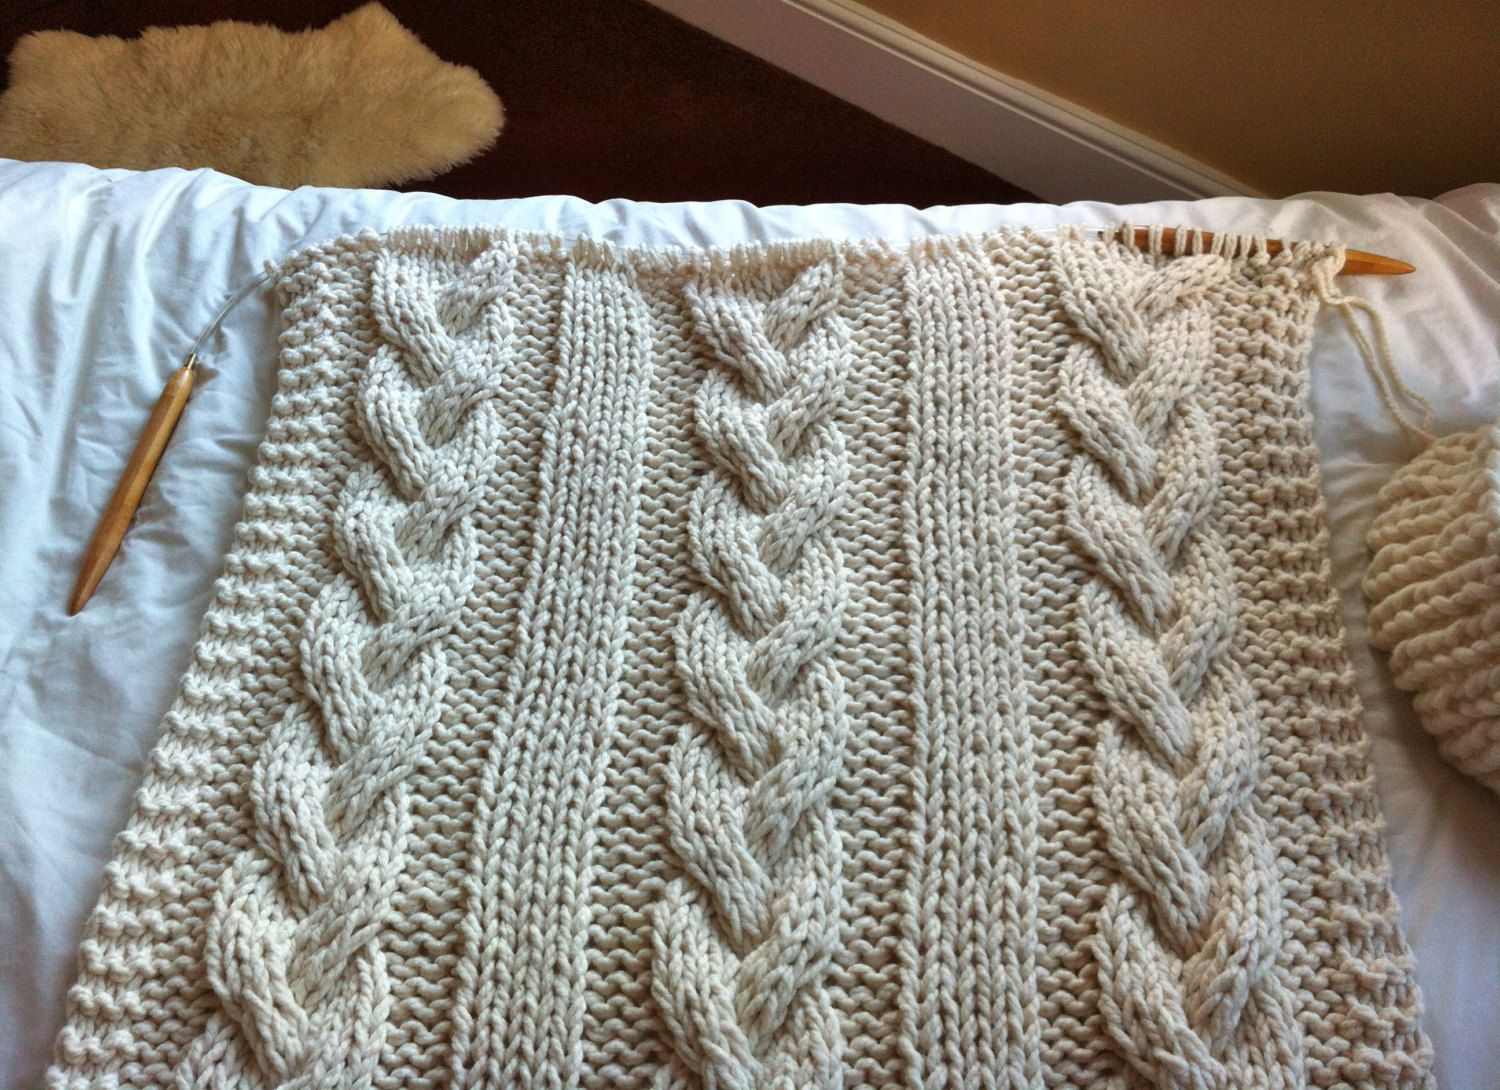 Giant Cable Knit Blanket or Throw by Knittingrev on Etsy | Projects ...